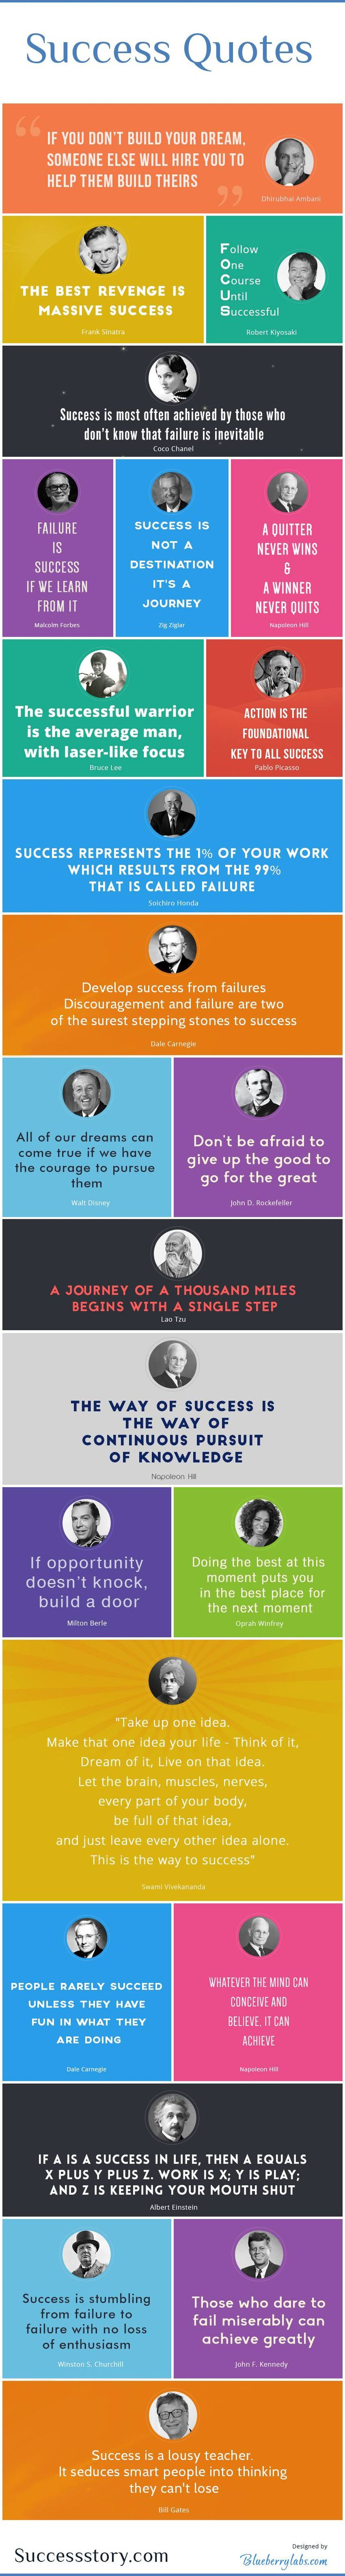 Looking for inspiration? Check out this success quotes infographic! The famous success quotes featured will get – and keep – you on track!